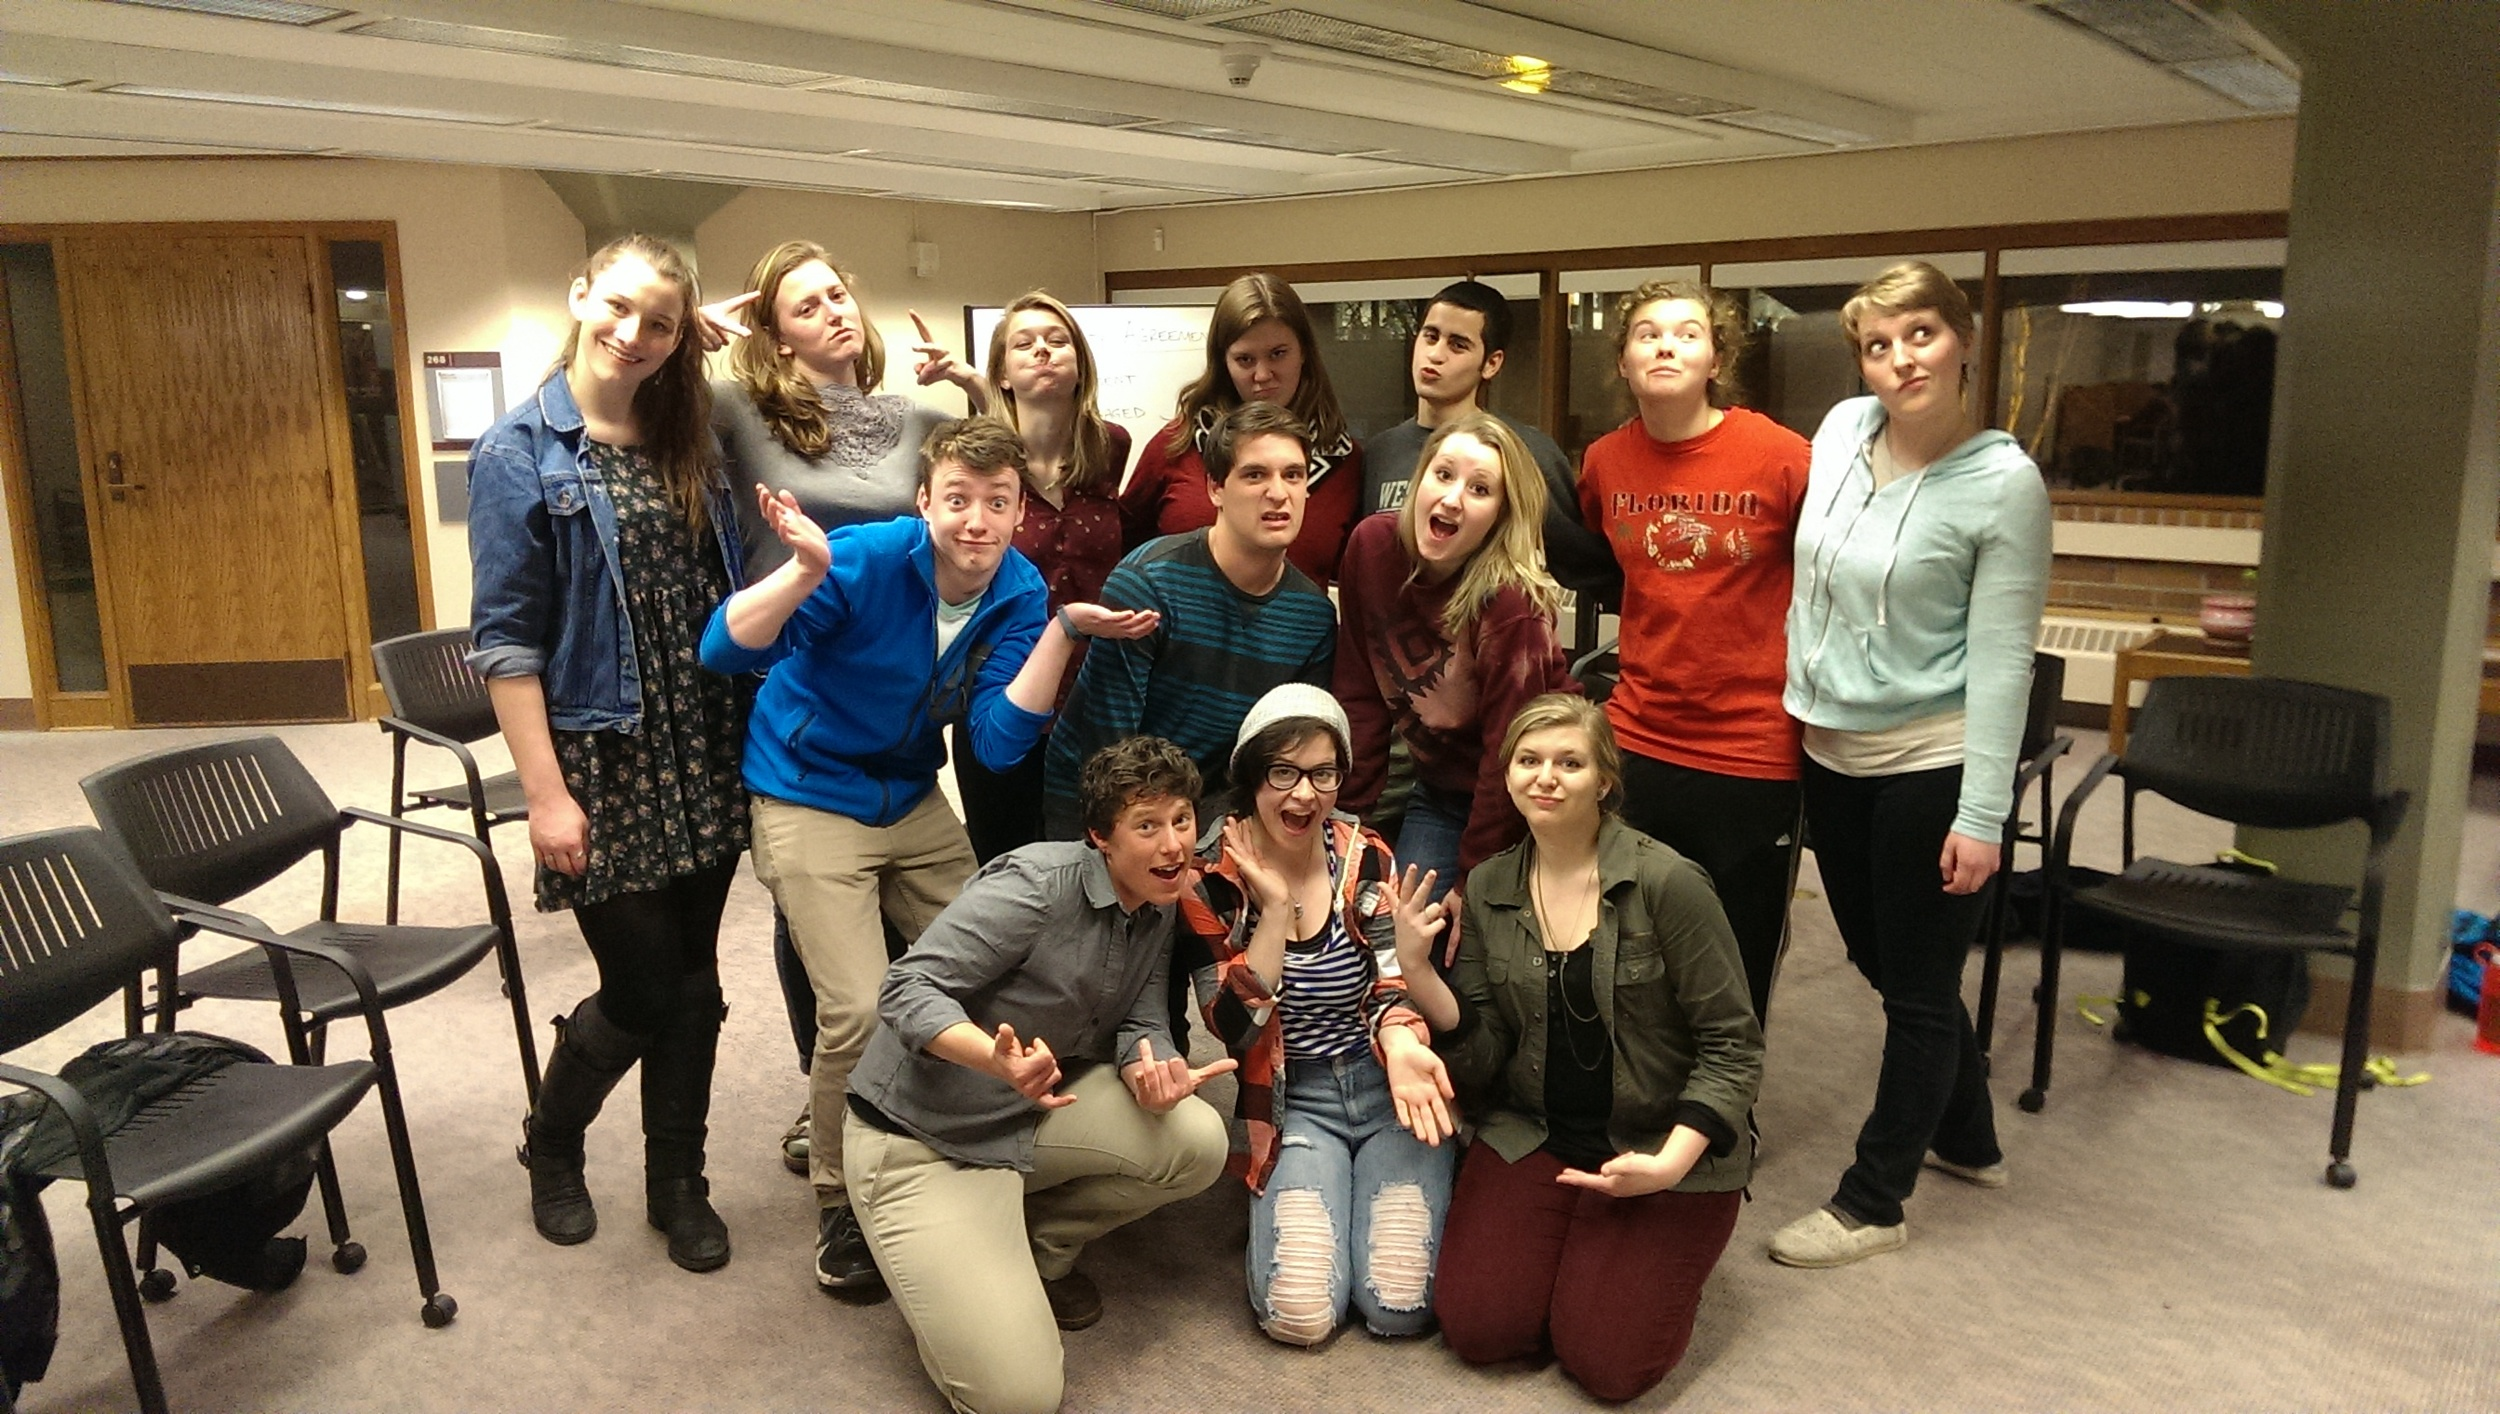 WWU Service-Learning Leaders having a blast after an amazing team-building workshop